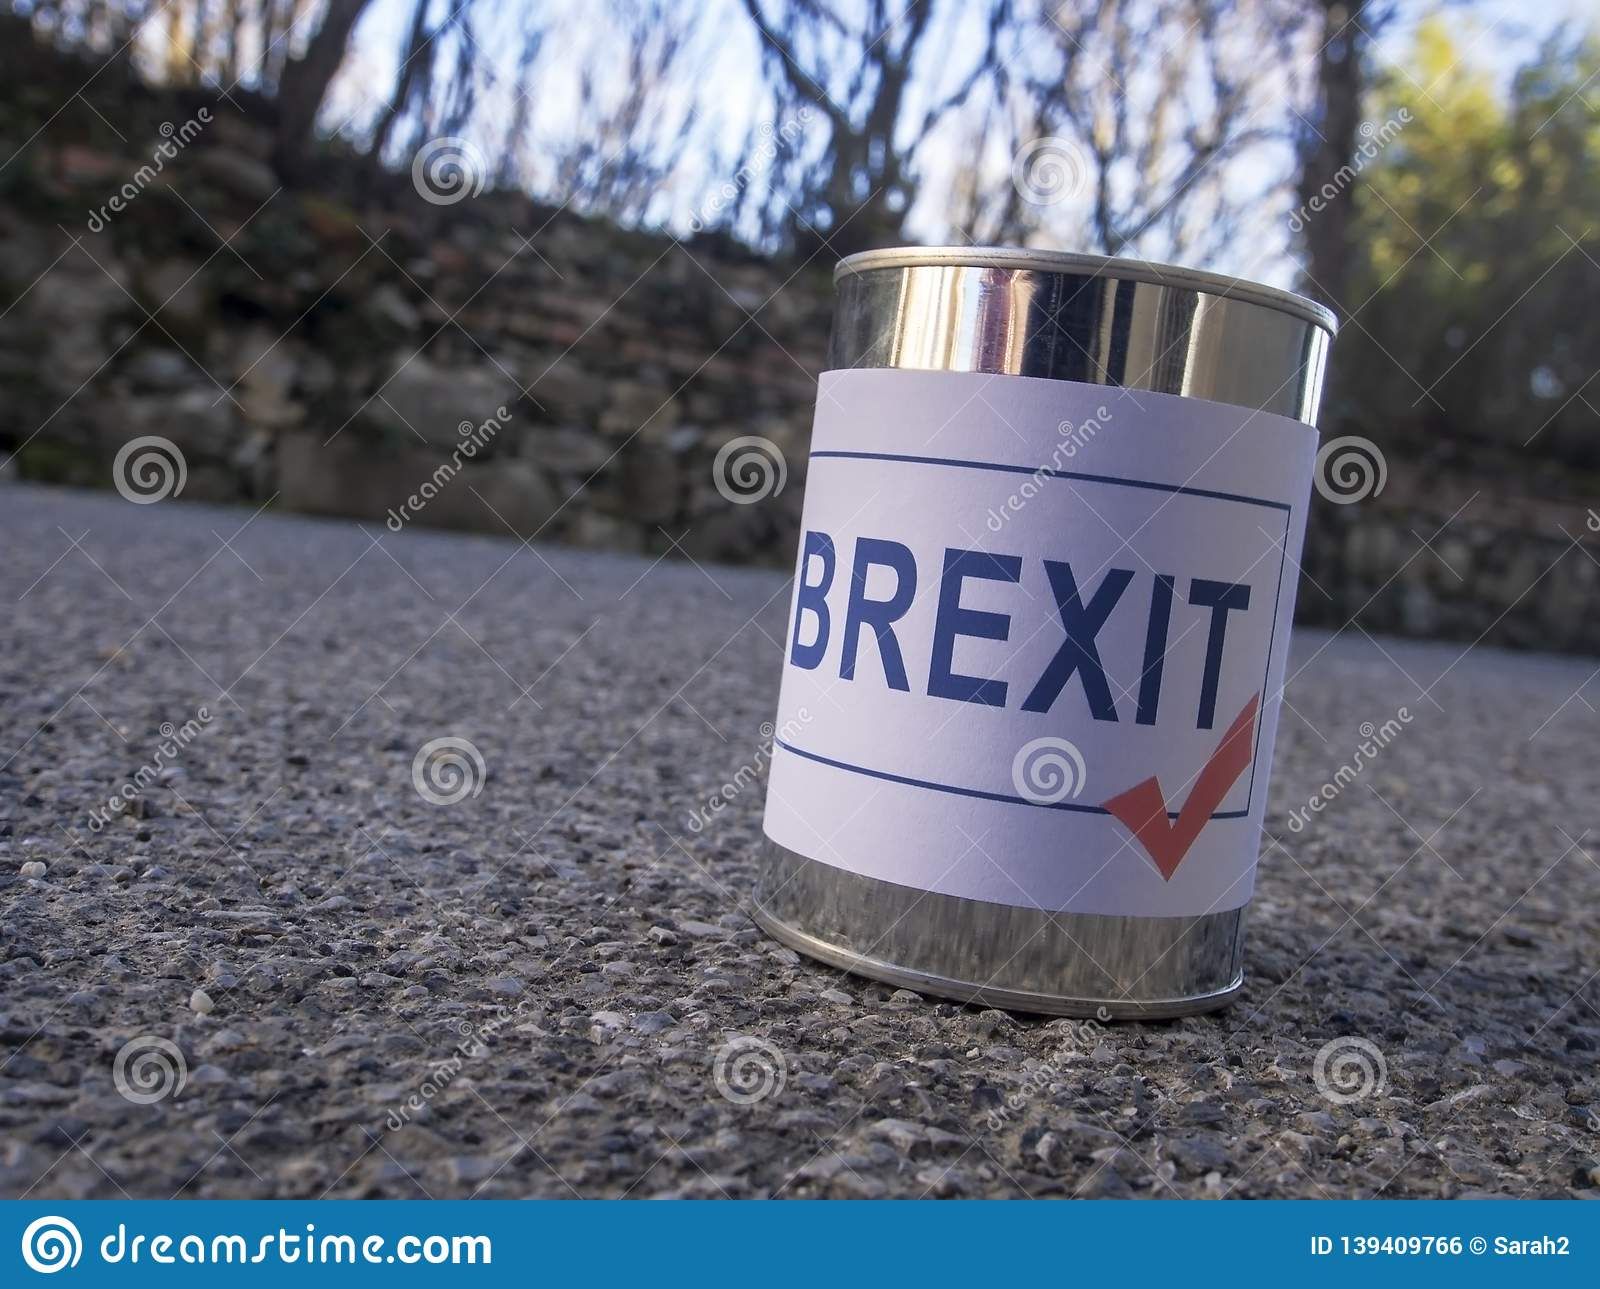 Brexit tin can in the road ready for a kick, UK EU politics metaphor or concept.